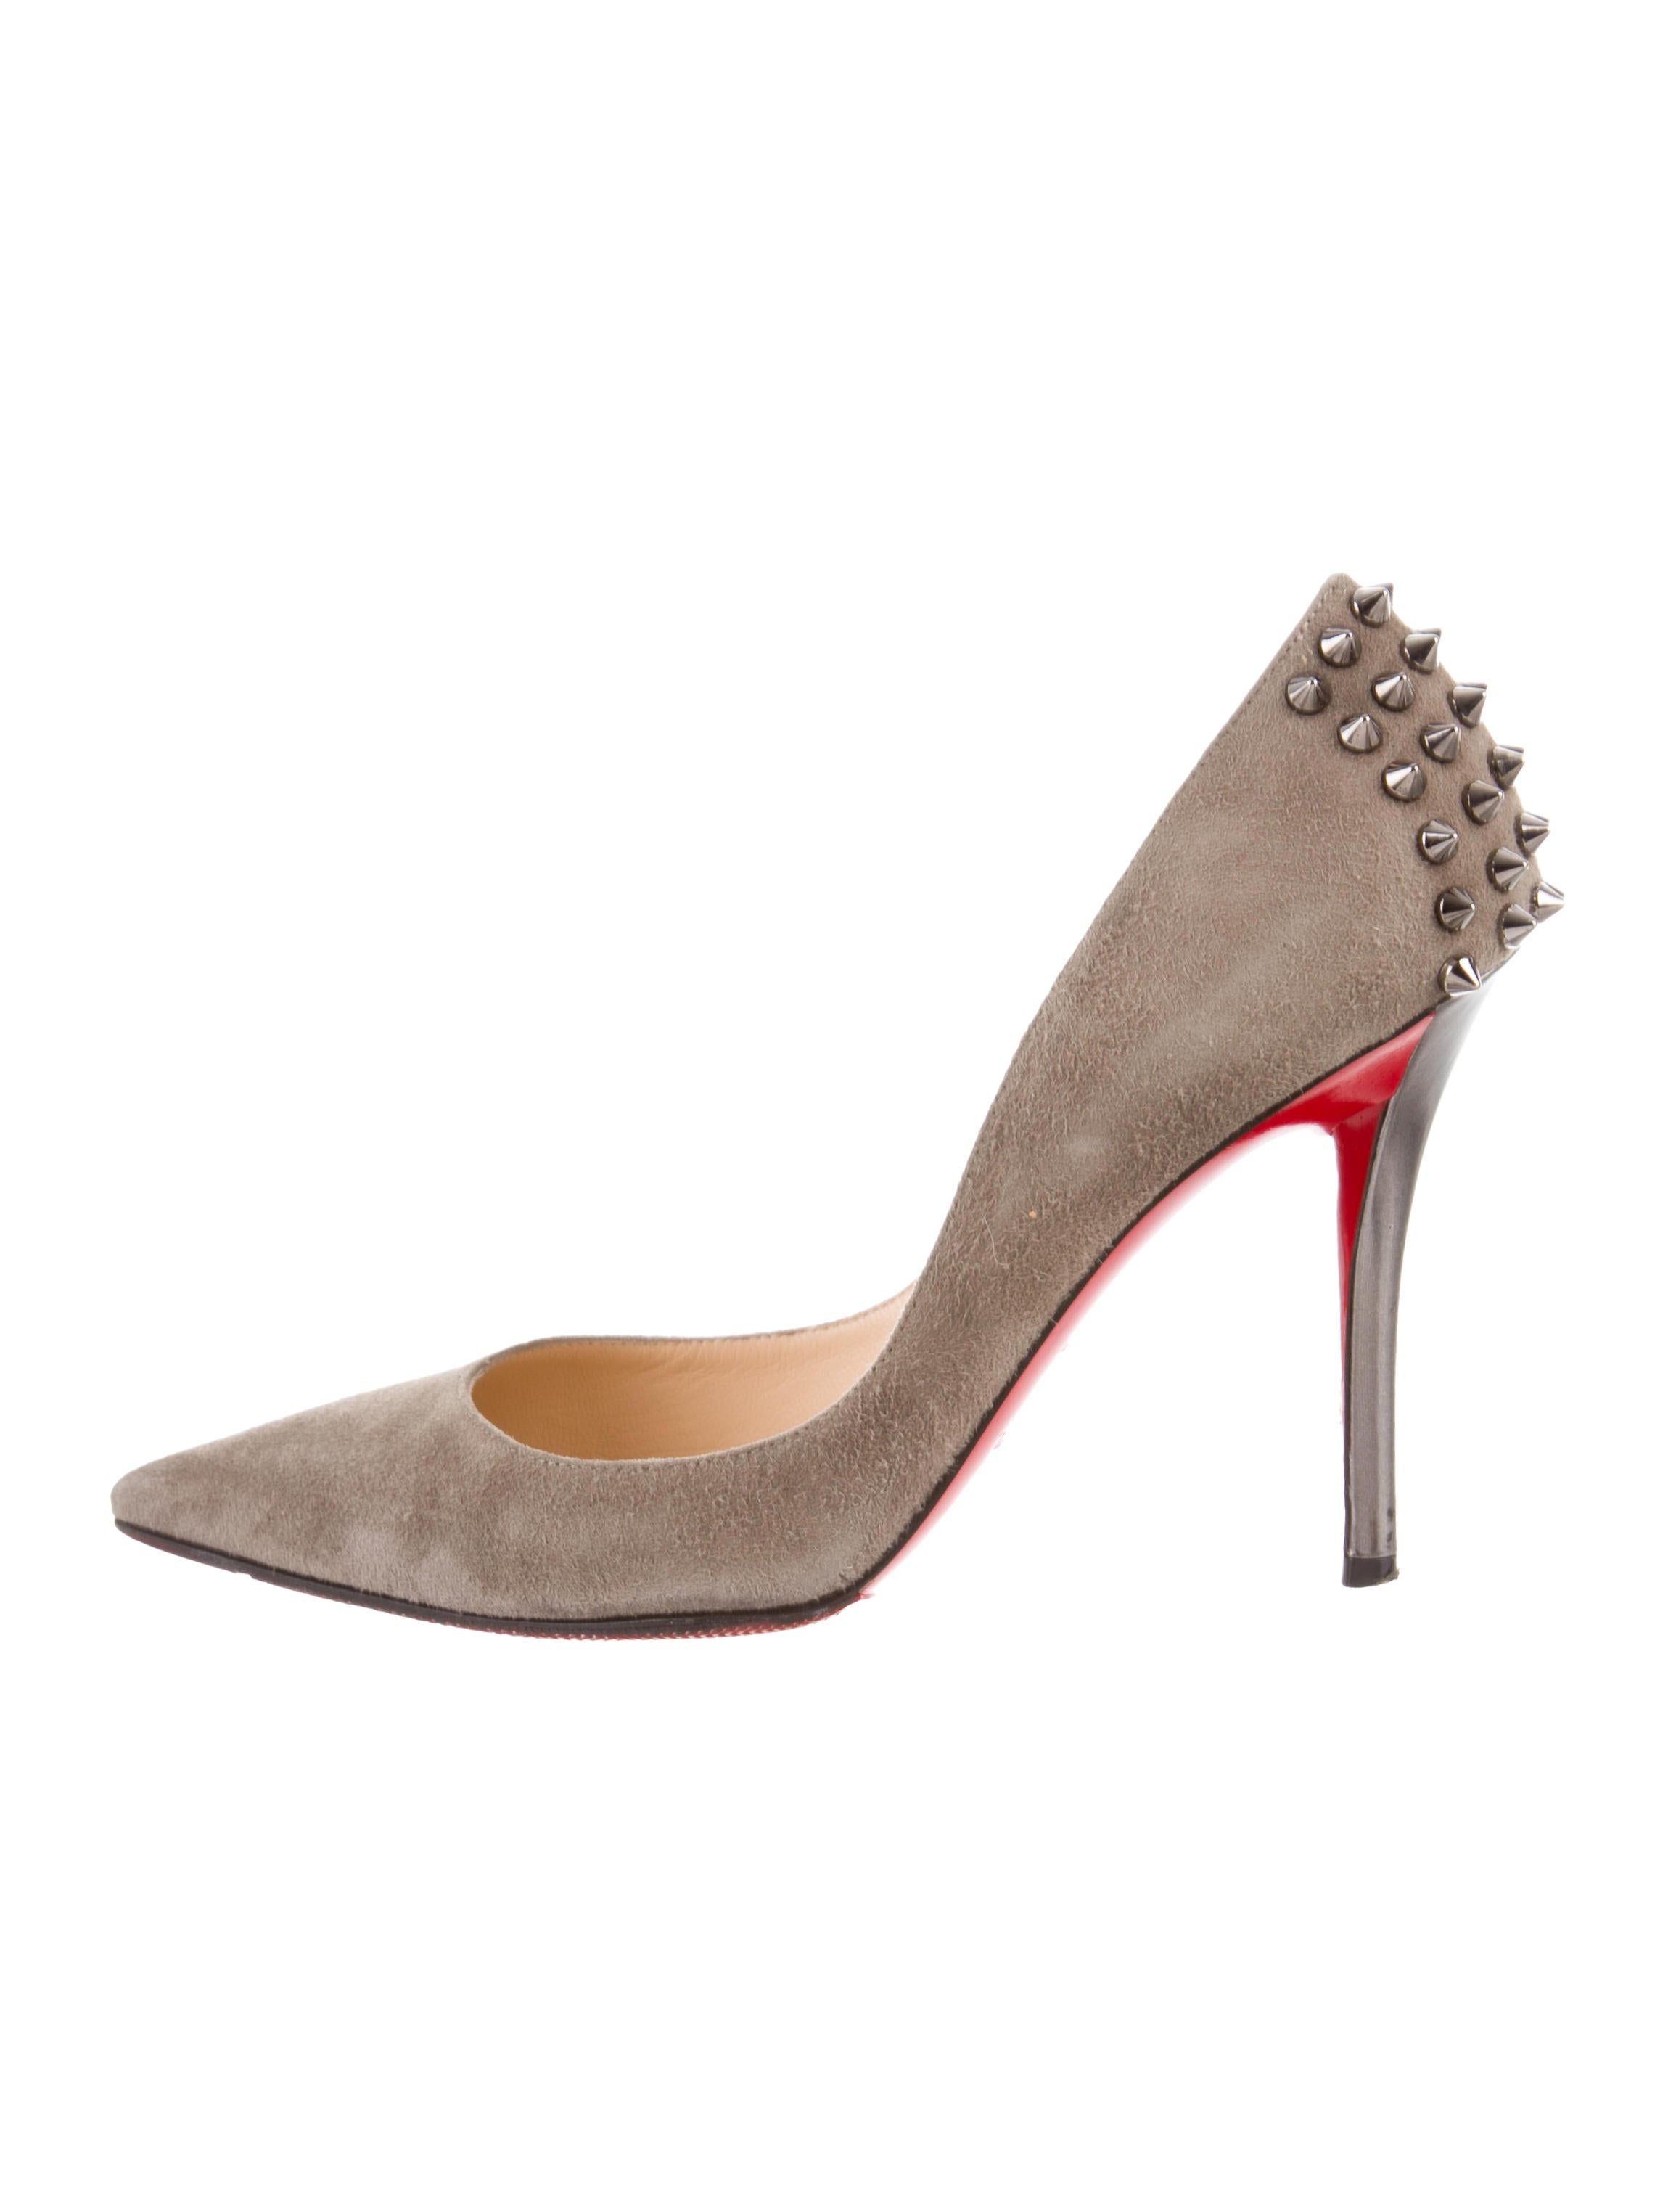 size 40 29074 6a39b Christian Louboutin Karistrap Leather Ankle Boots - Shoes ...